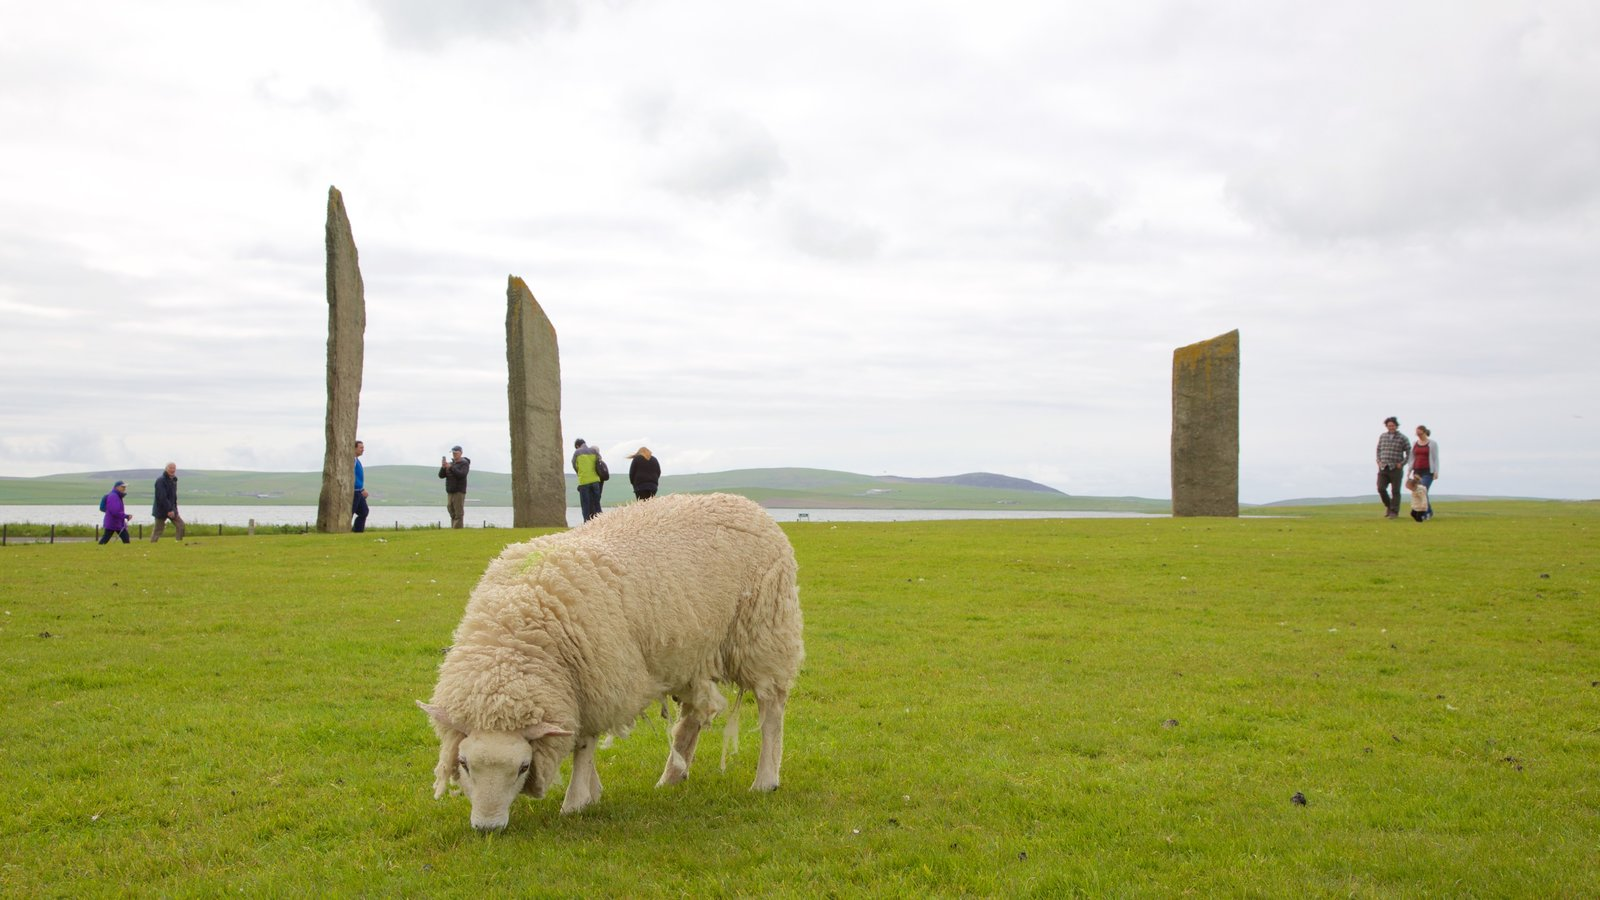 Standing Stones of Stenness featuring heritage elements, land animals and tranquil scenes